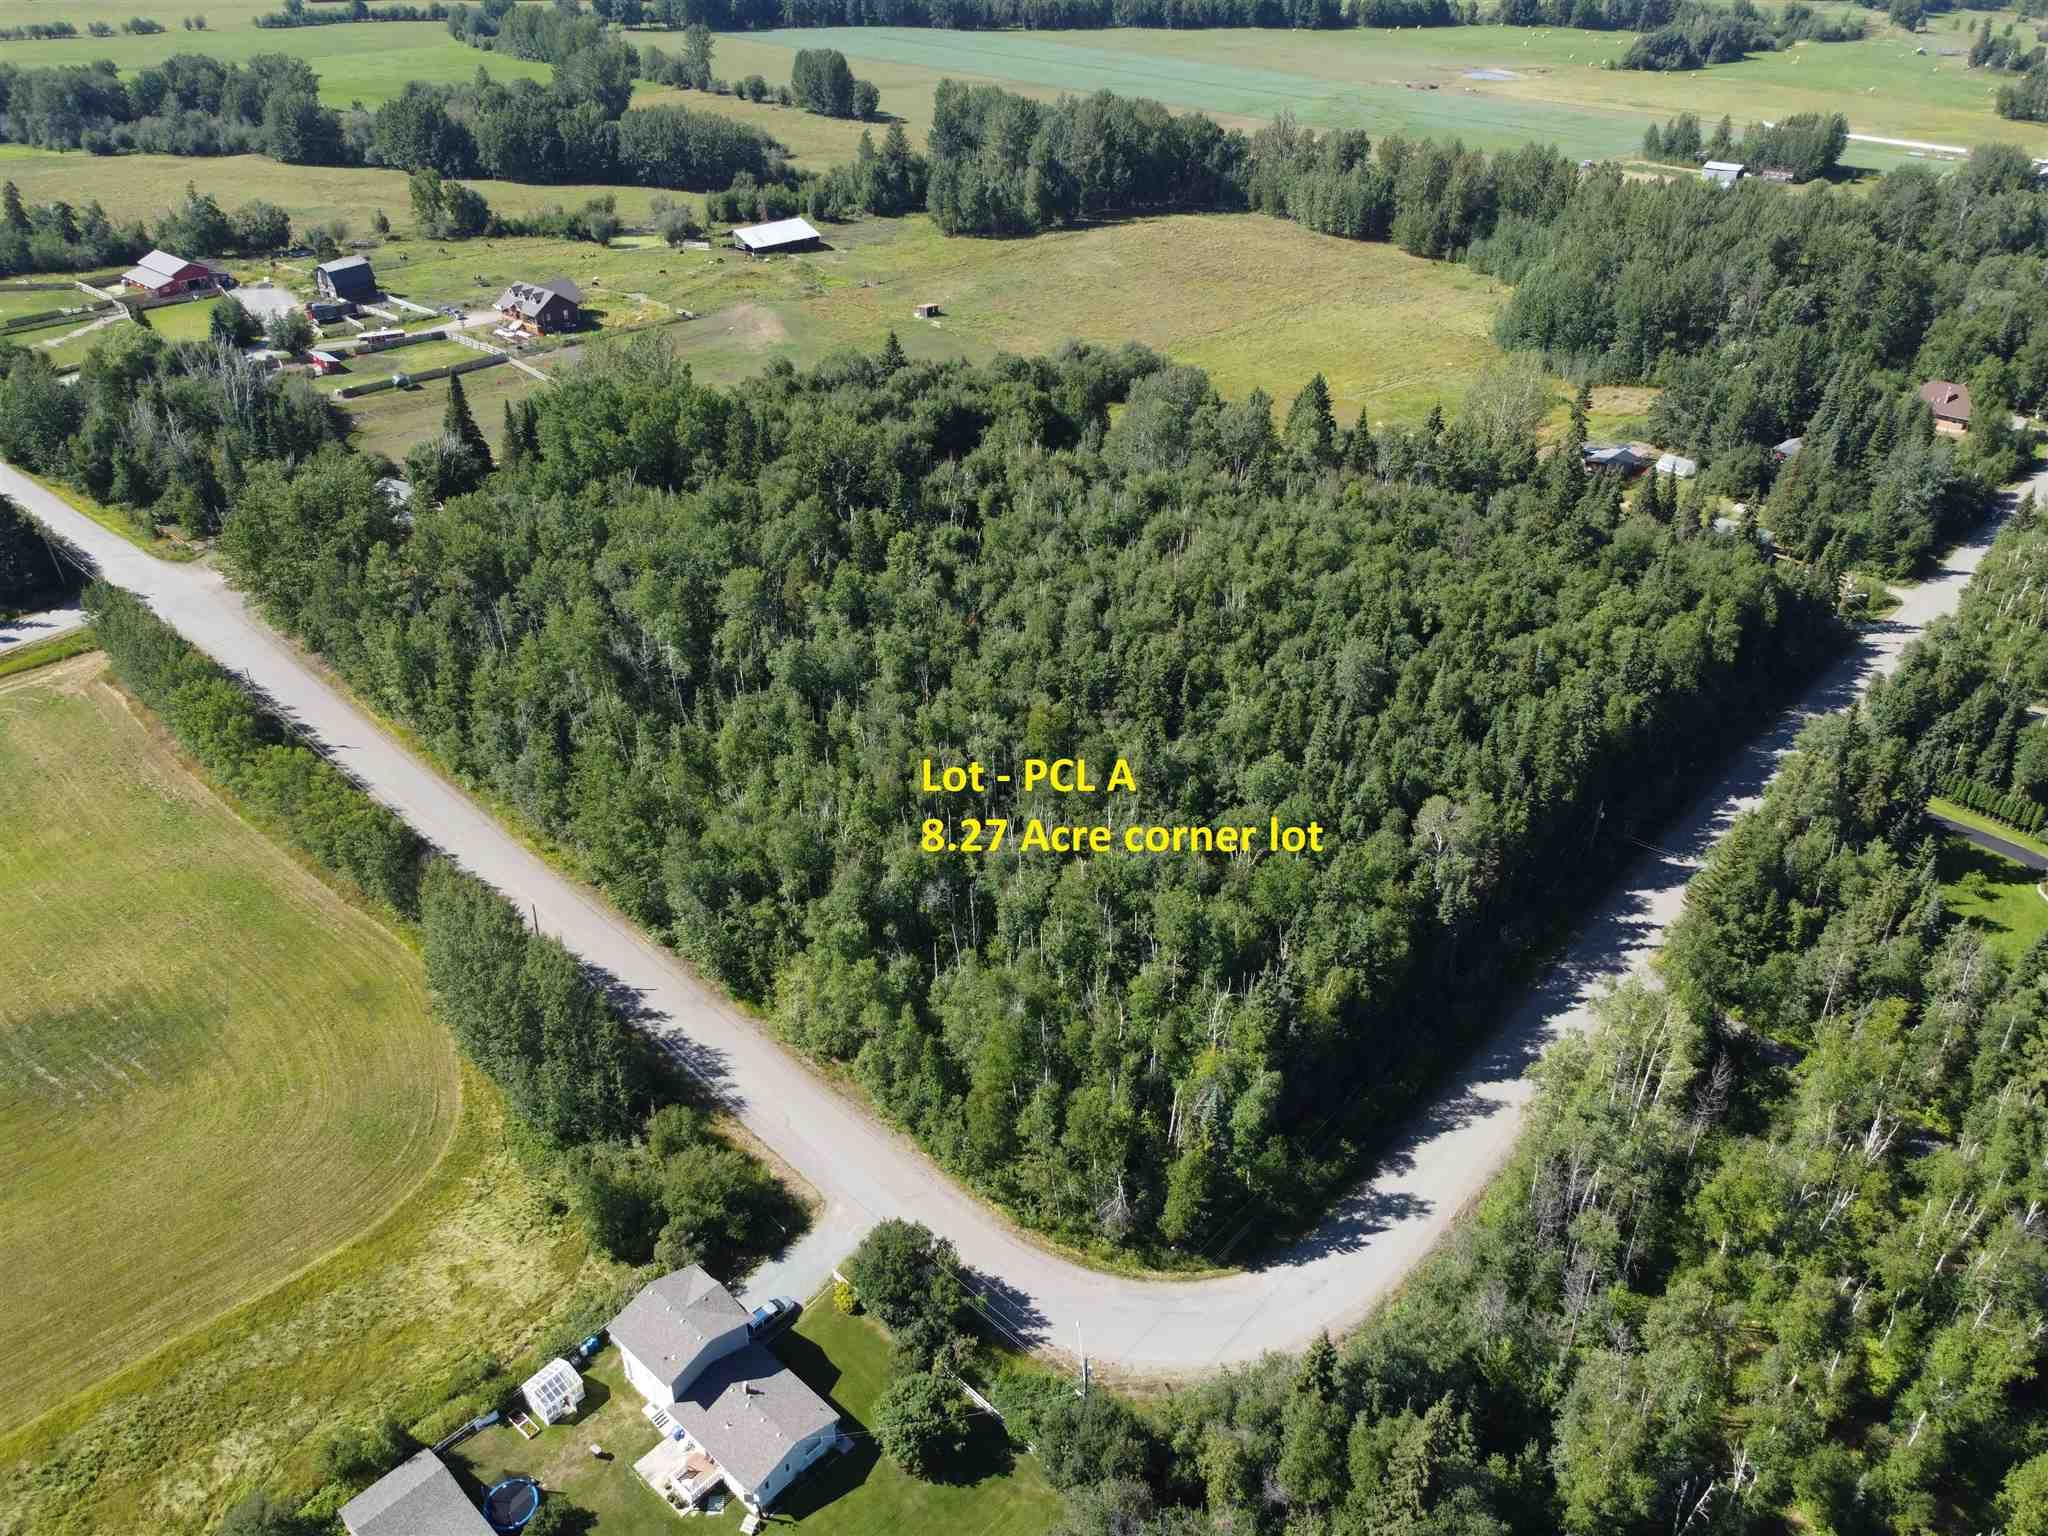 """Main Photo: PCL A - 6261 CRANBROOK HILL Road in Prince George: Cranbrook Hill Land for sale in """"CRANBROOK HILL"""" (PG City West (Zone 71))  : MLS®# R2607390"""